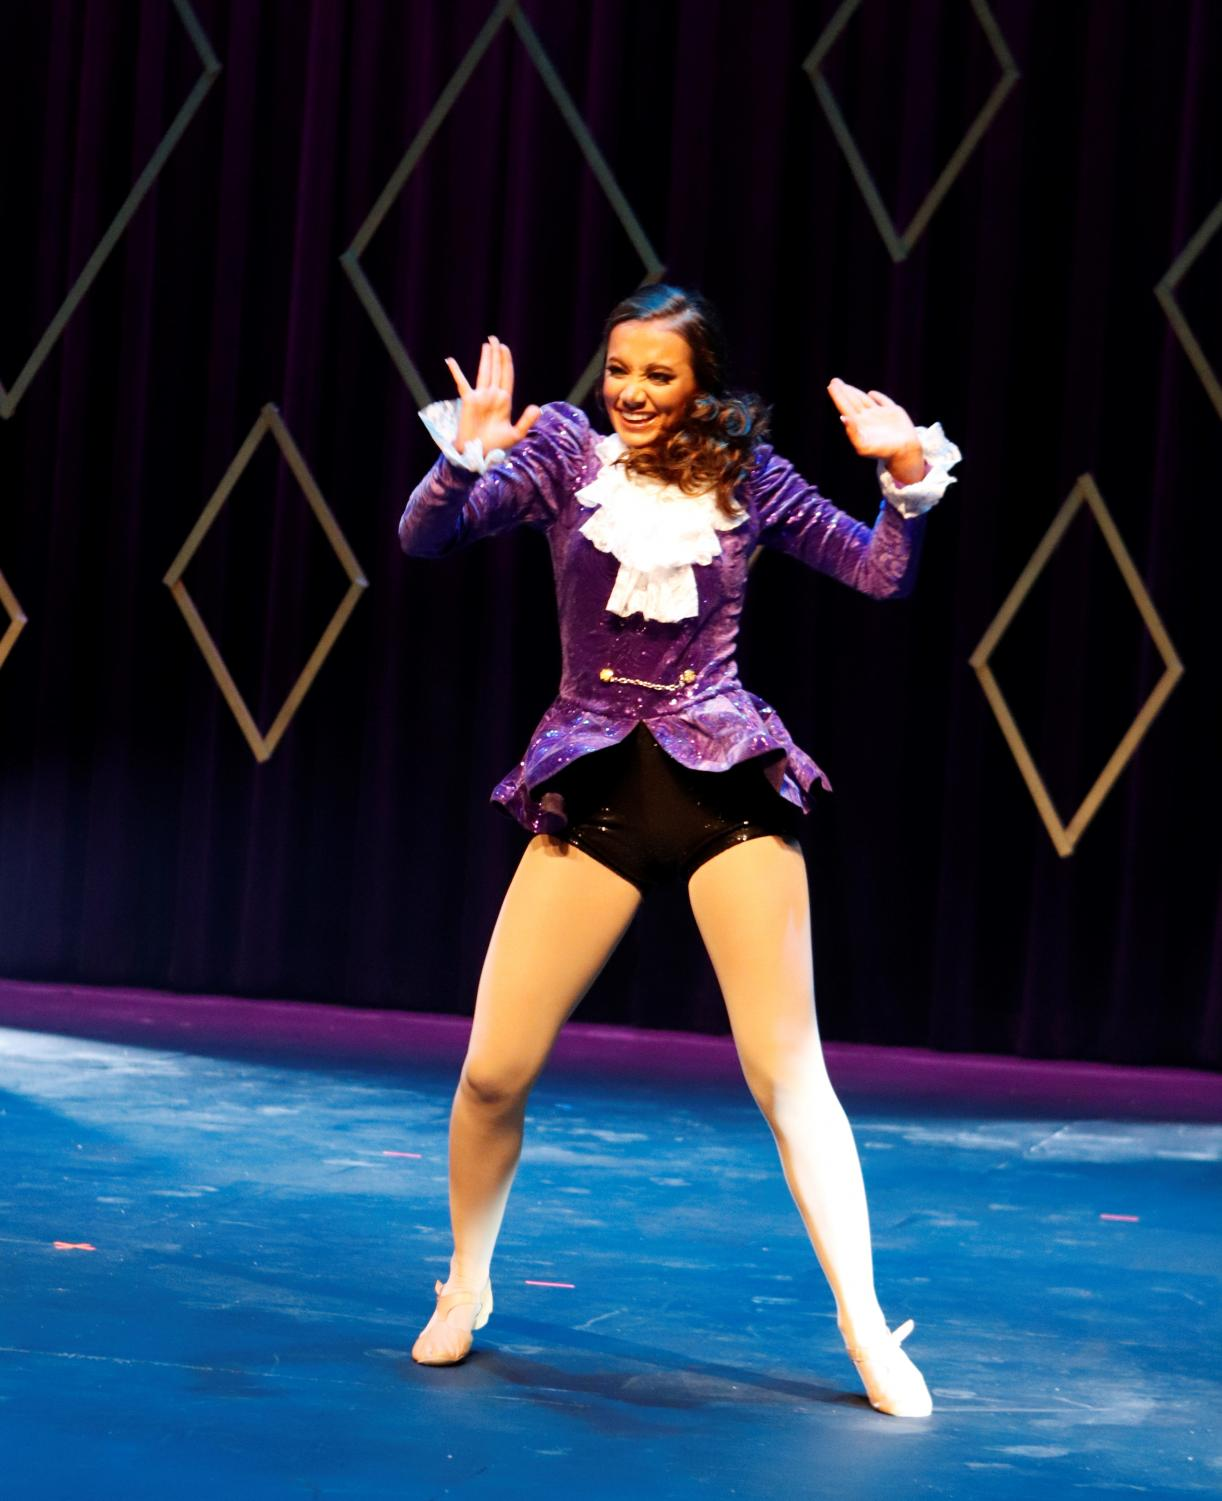 Baylee Smith performed a Prince-themed dance routine during the talent competition at the Miss Southeastern 2019 pageant.